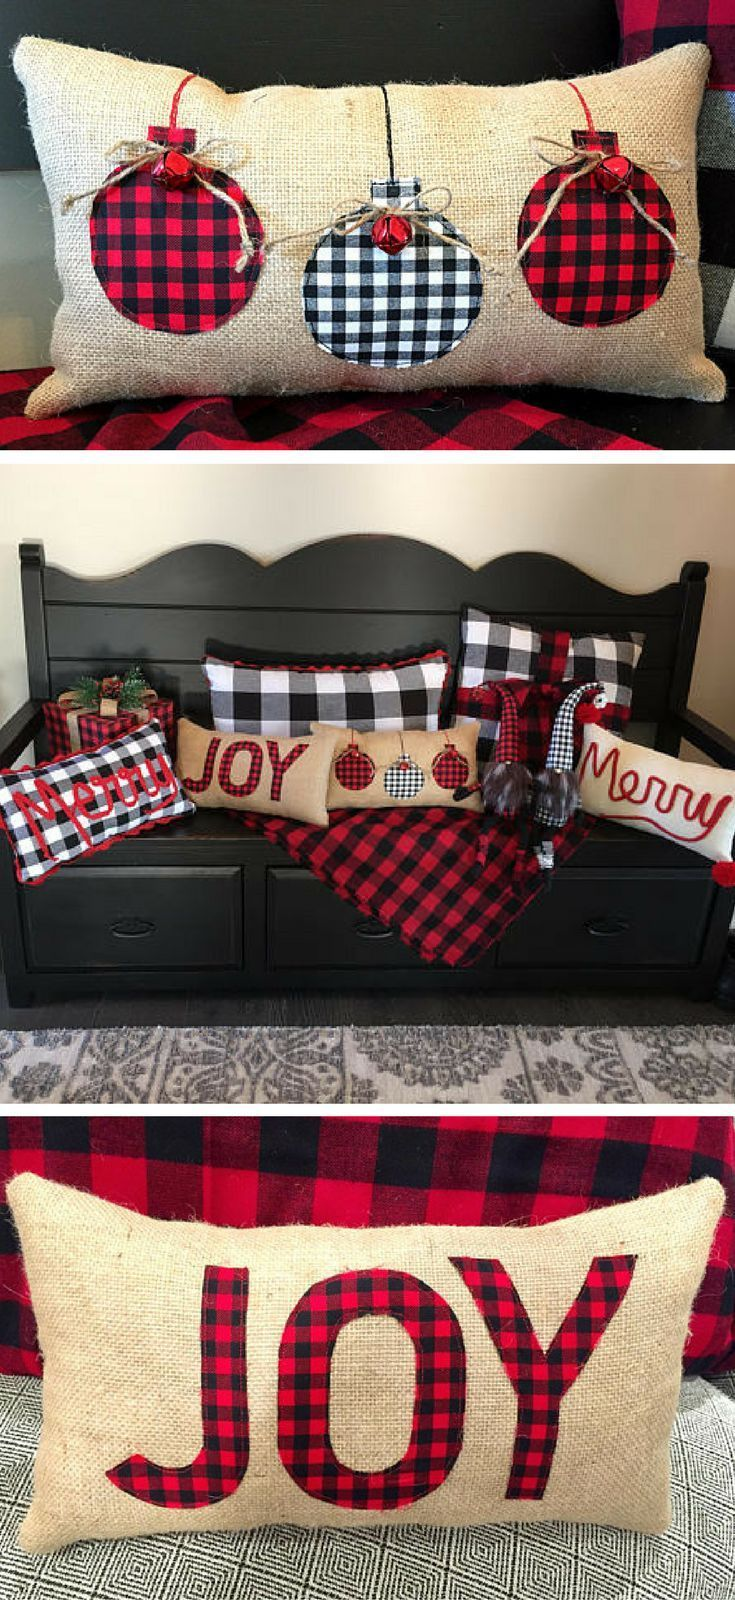 Burlap Christmas Pillows, Buffalo Plaid Christmas Pillow, Red Buffalo Check Christmas, Black white buffalo check Farmhouse Christmas decor, Christmas Pillow, Rustic Christmas decor #ad